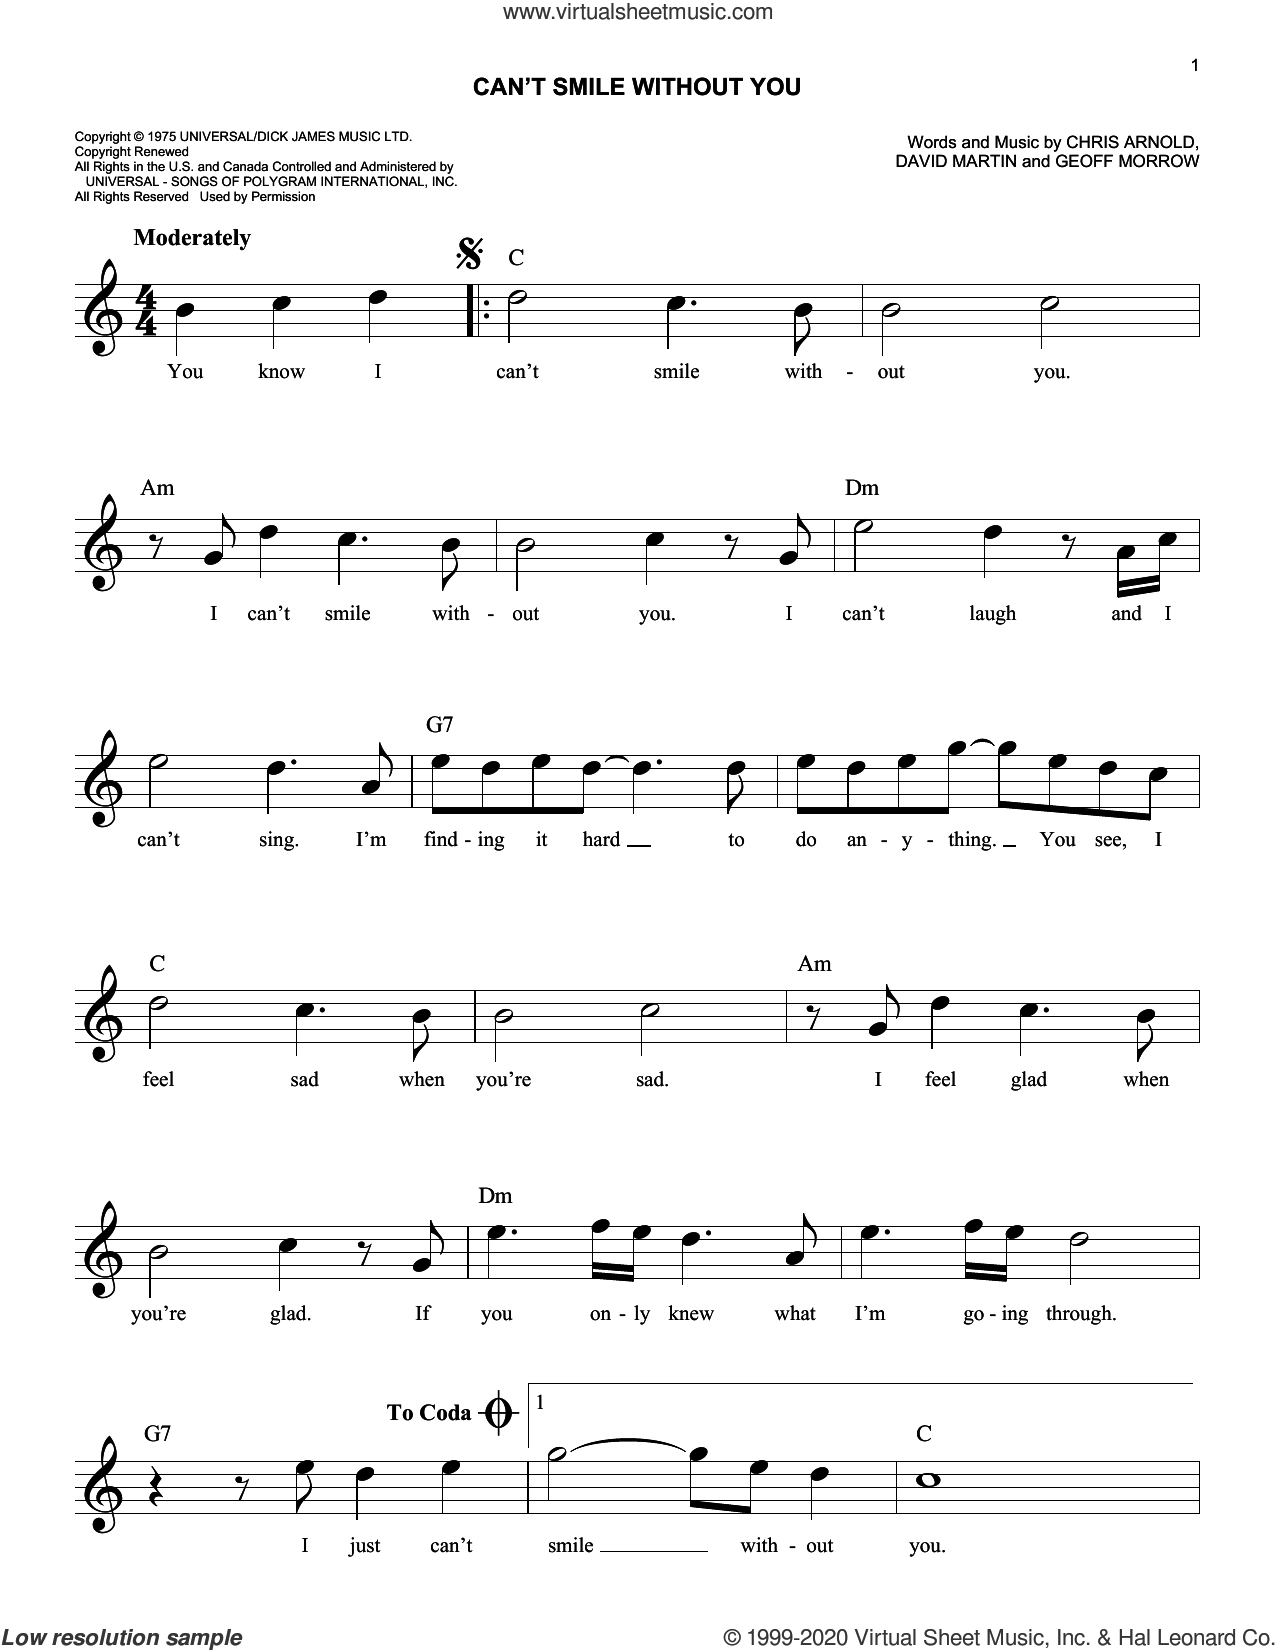 Can't Smile Without You sheet music for voice and other instruments (fake book) by Barry Manilow, Chris Arnold, David Martin and Geoff Morrow, intermediate skill level